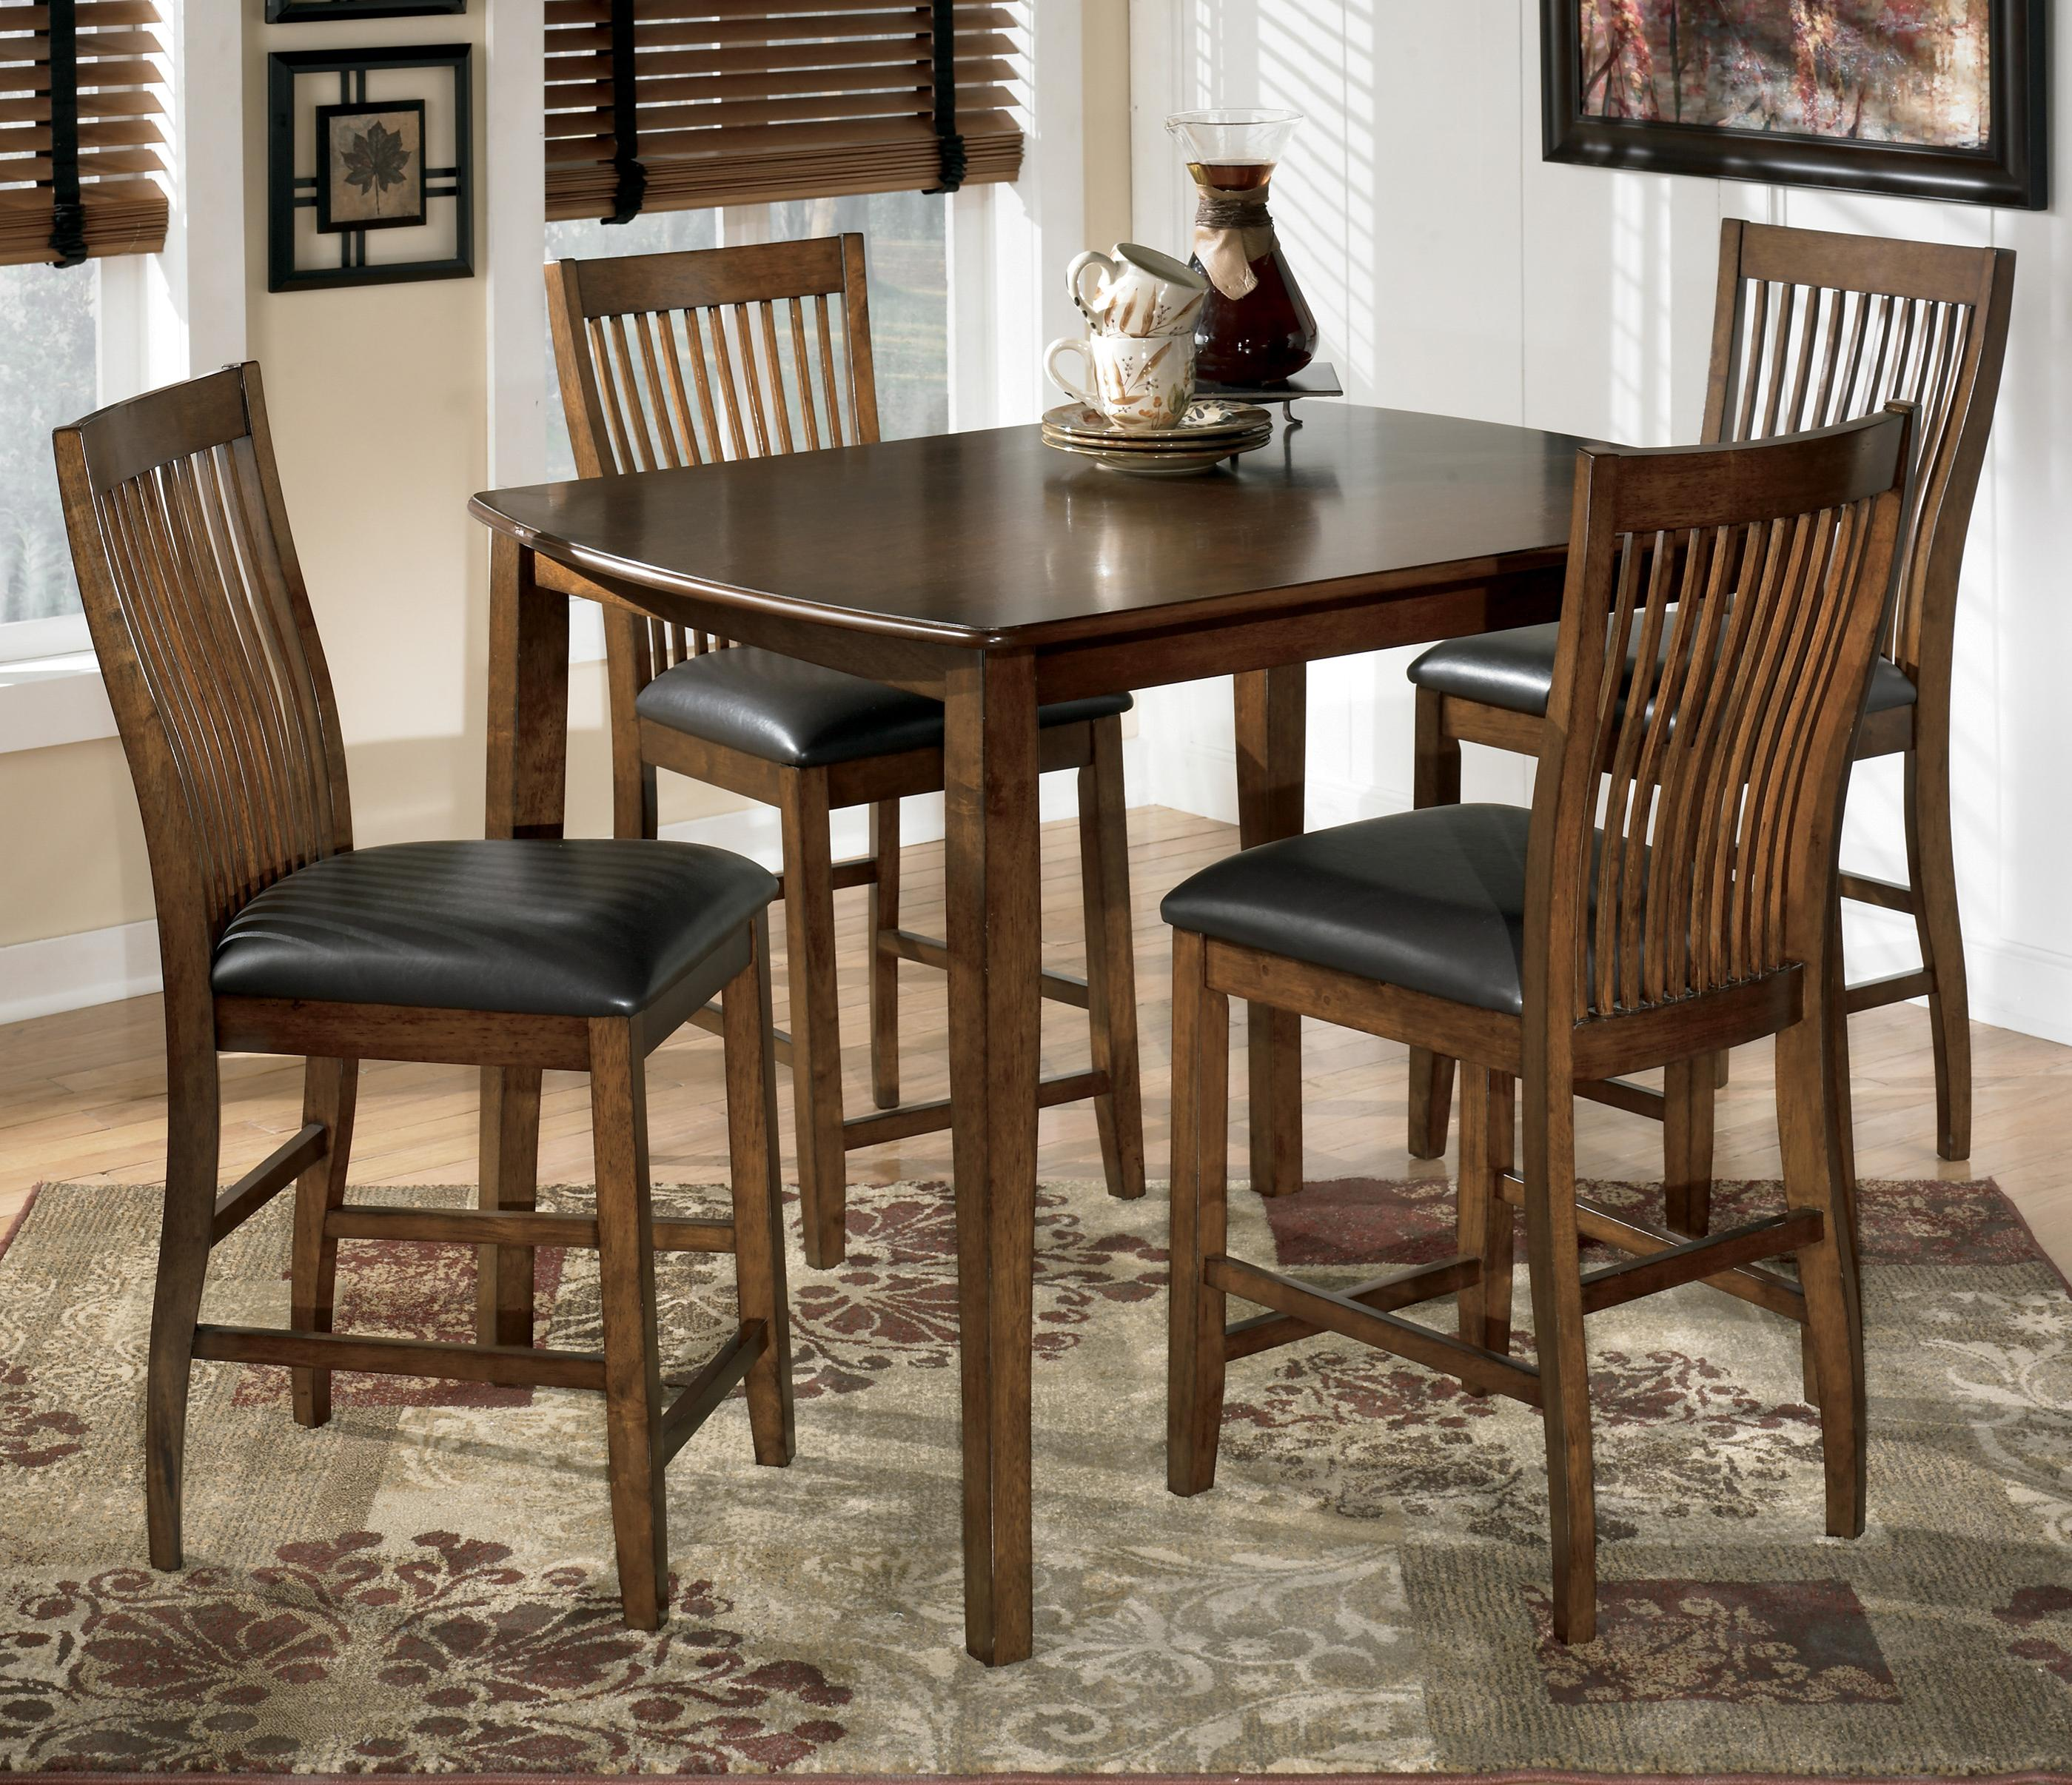 Ashley Furniture Kitchen Table And Chairs Signature Design By Ashley Furniture Stuman 5 Piece Rectangular